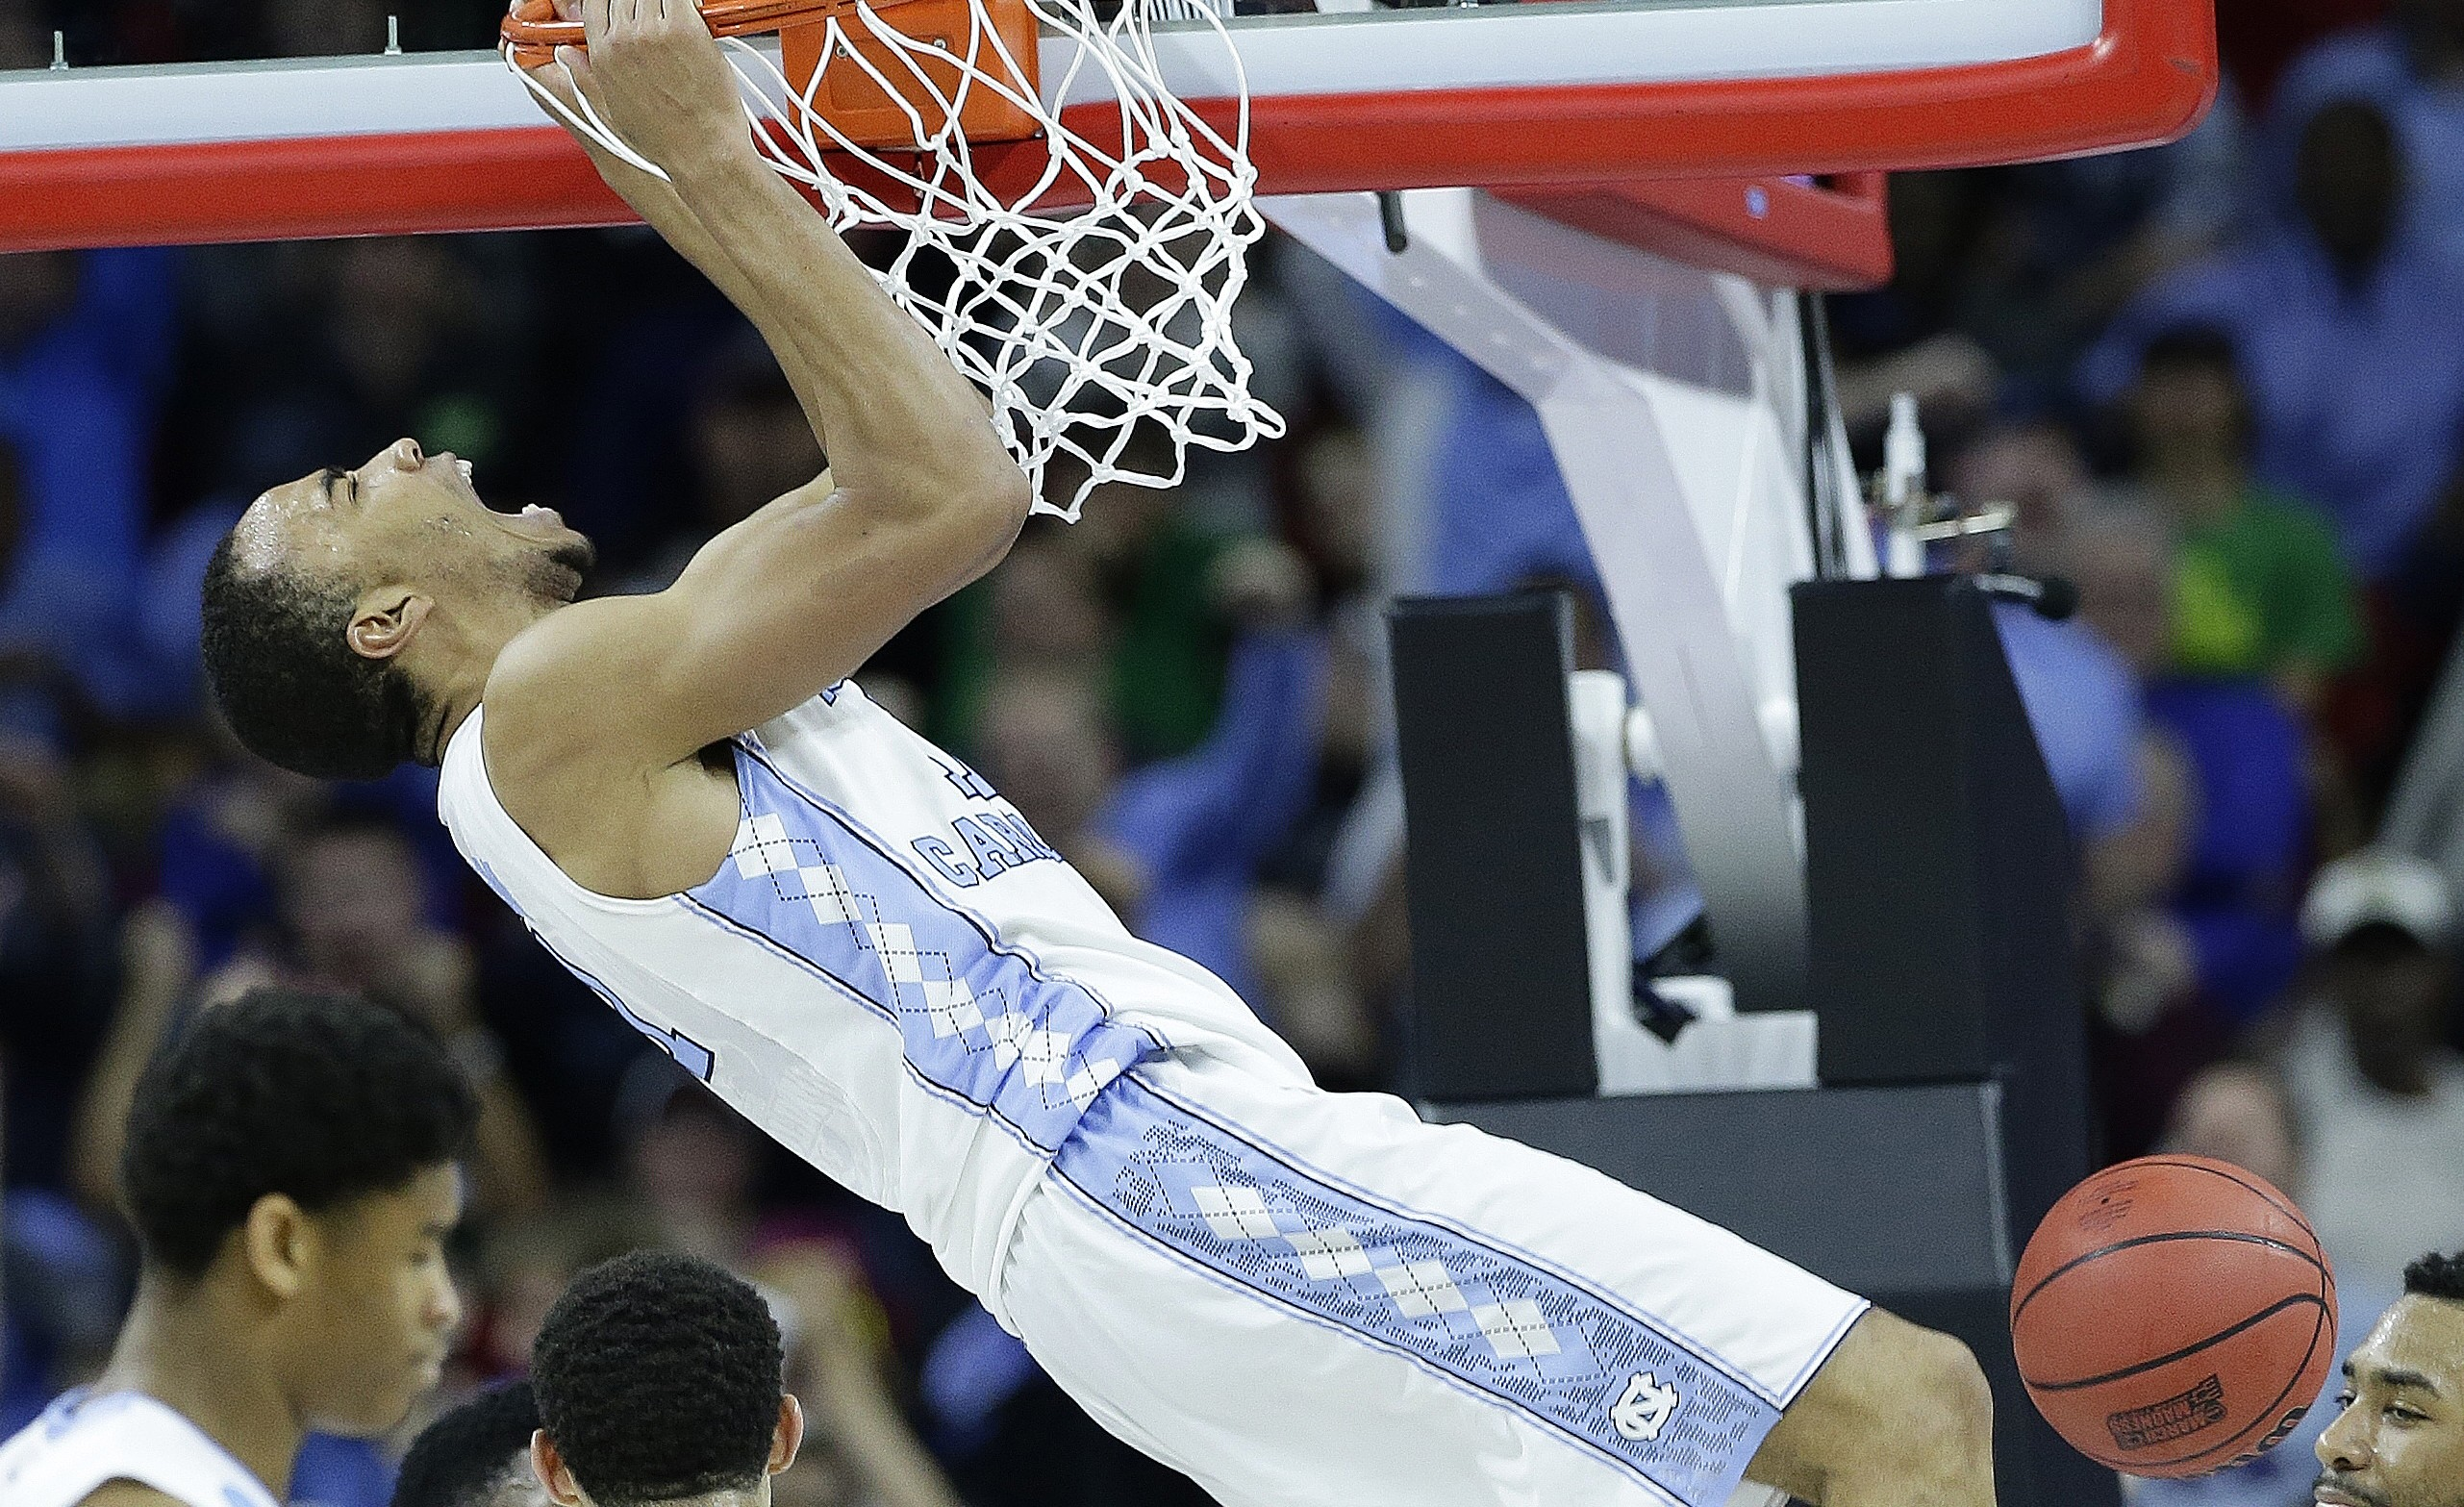 North Carolina forward Brice Johnson (11) reacts after dunking the ball against Providence guard Jalen Lindsey (21) during the second half of a second-round men's college basketball game in the NCAA Tournament, Saturday, March 19, 2016, in Raleigh, N.C. (AP Photo/Gerry Broome)